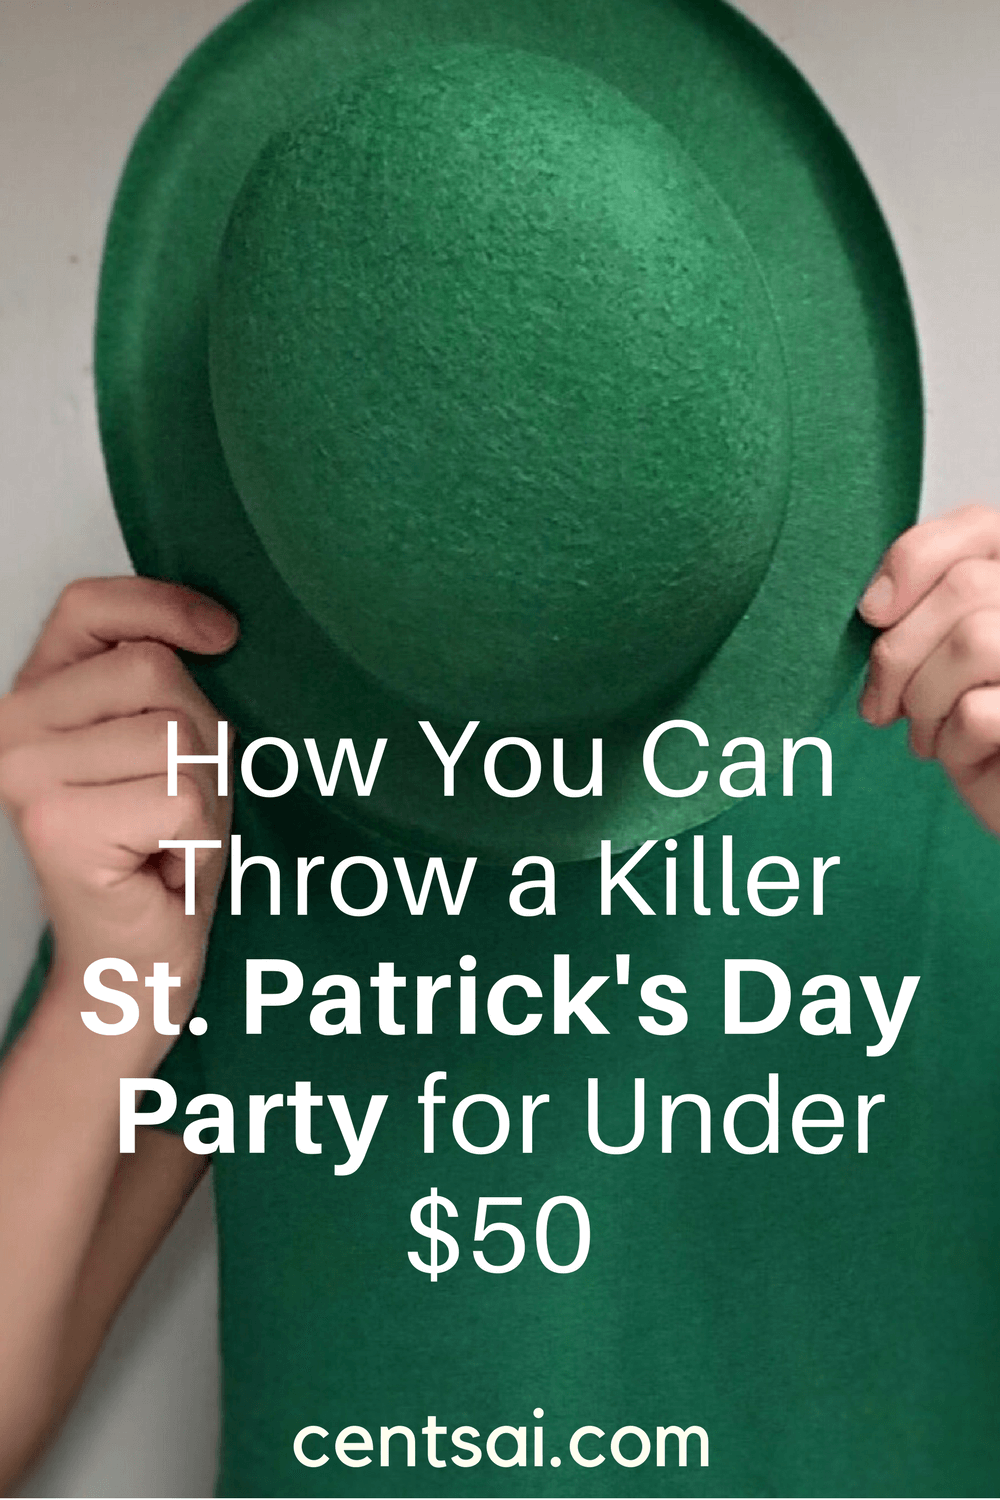 How You Can Throw a Killer St. Patrick's Day Party for Under $50